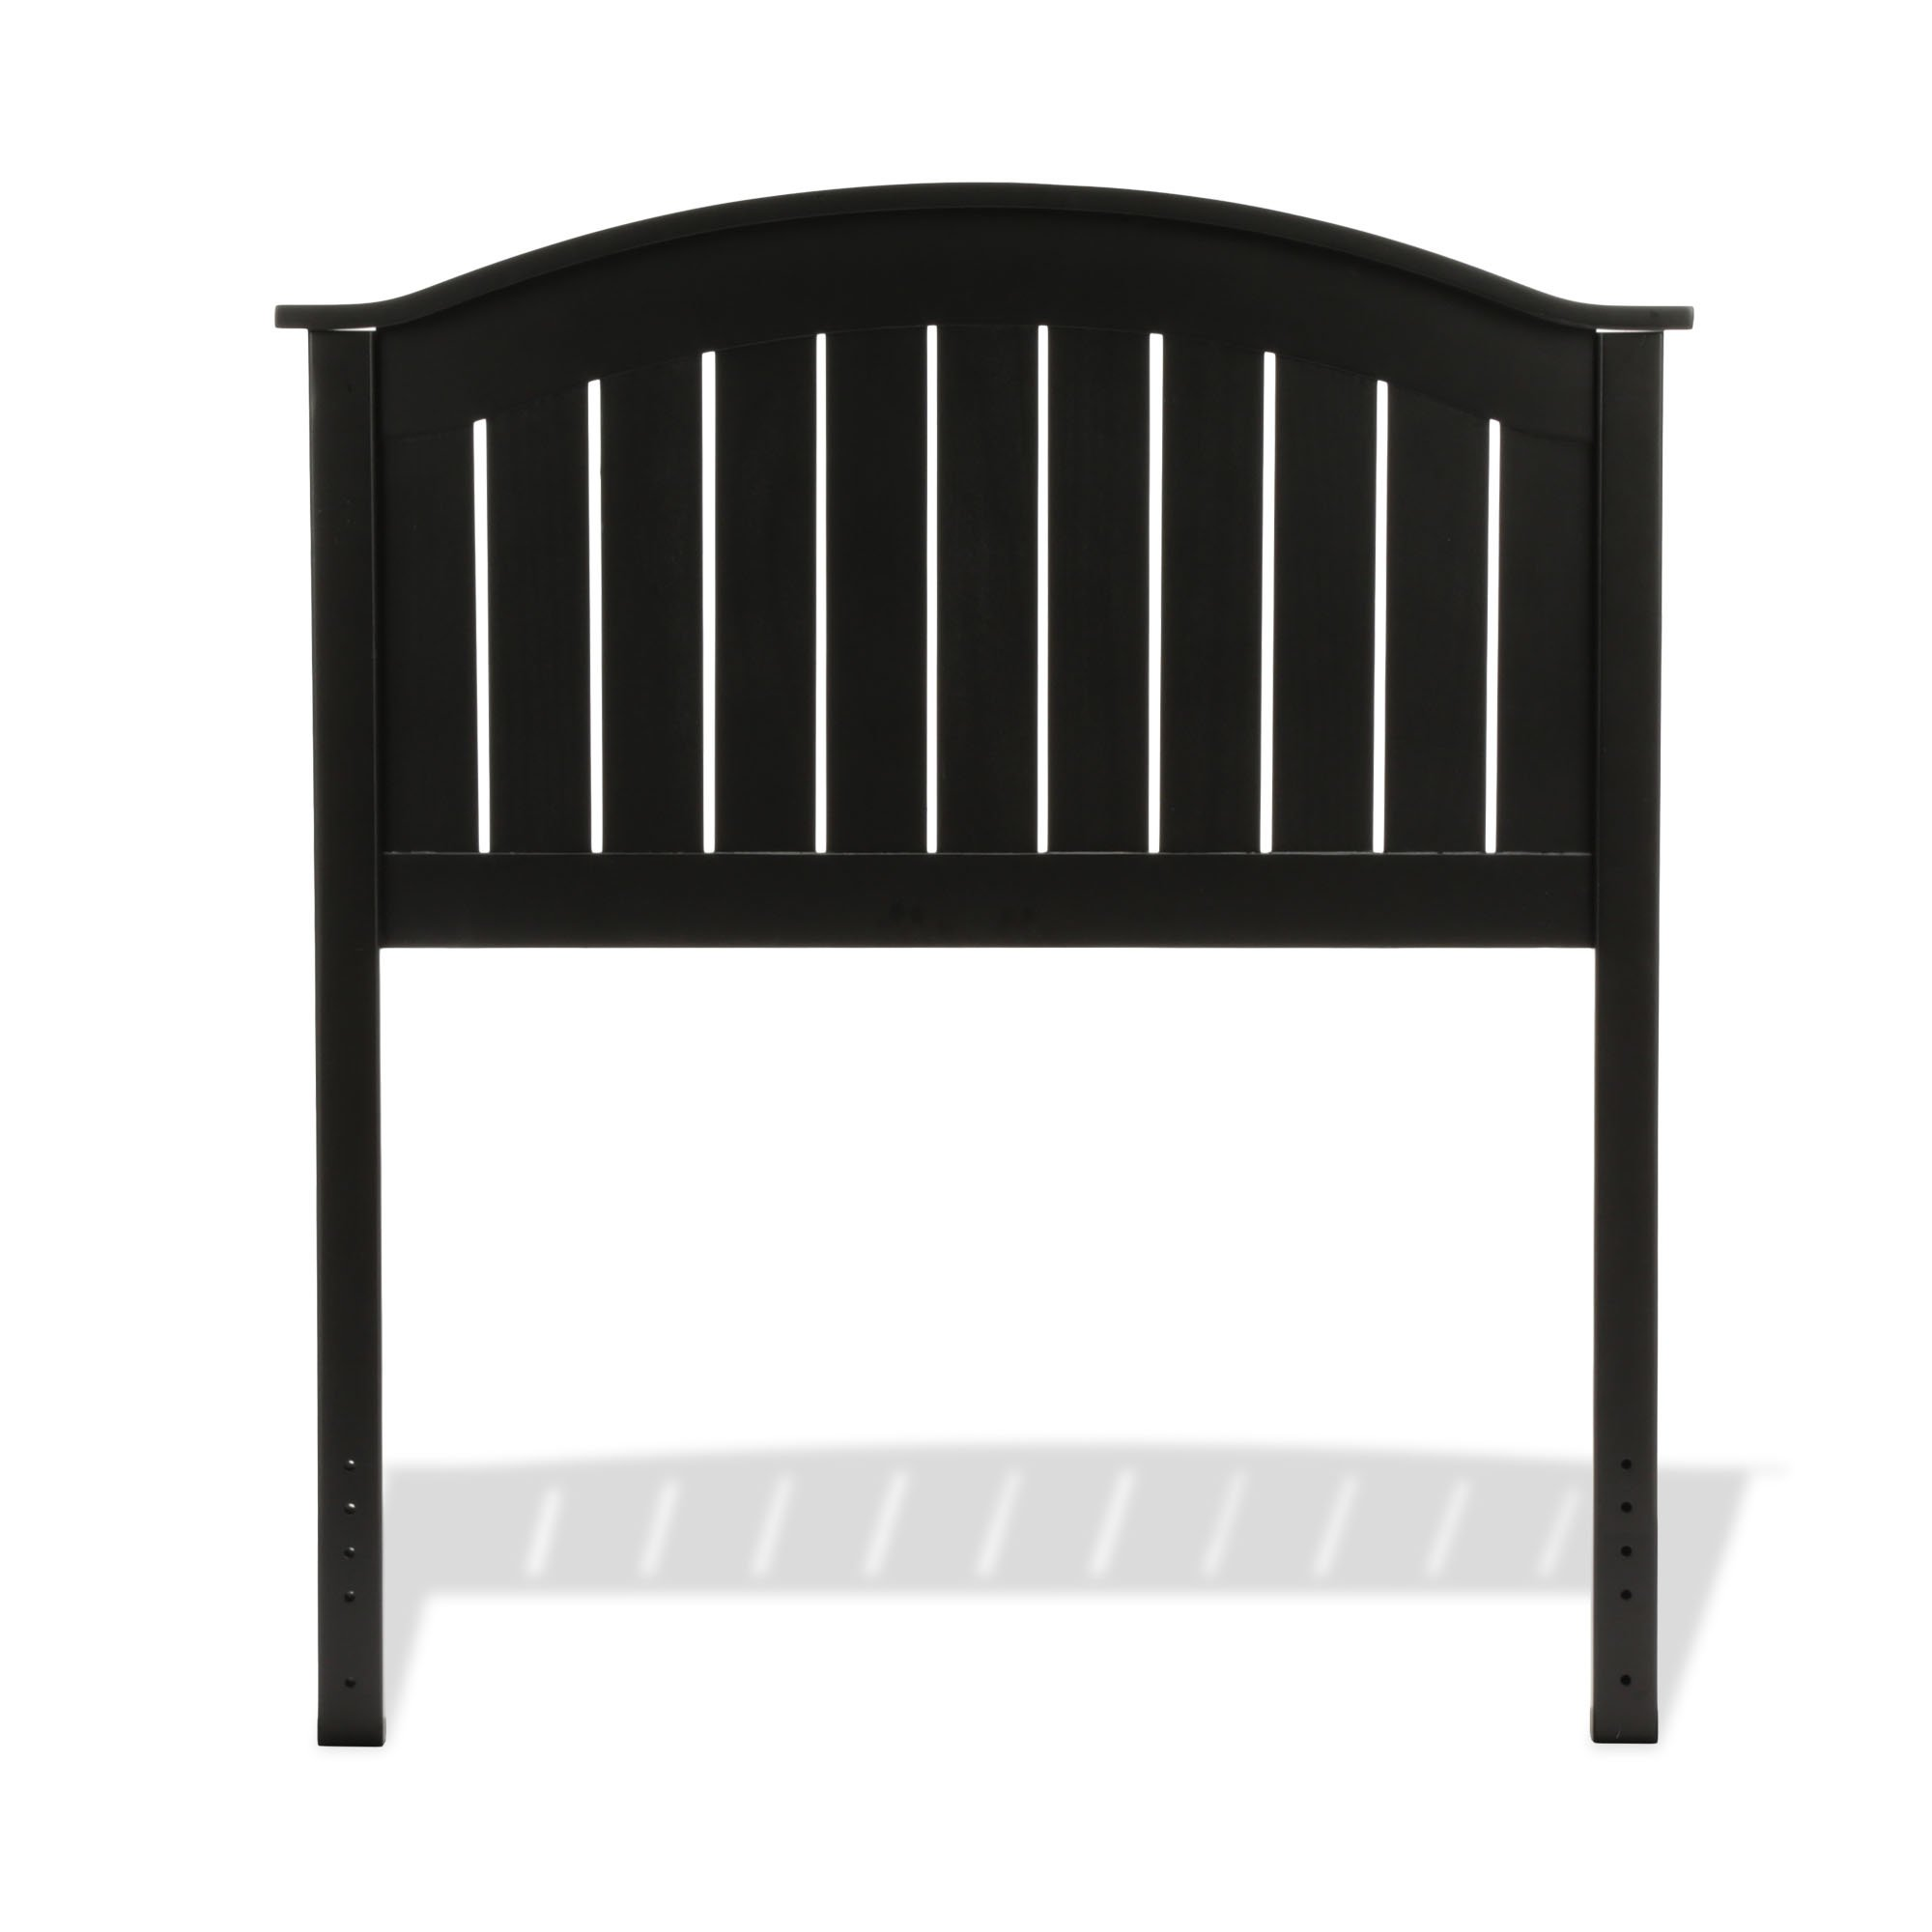 Fashion Bed Group Finley Wooden Headboard Panel with Curved Top Rail Design, Black Finish, Twin